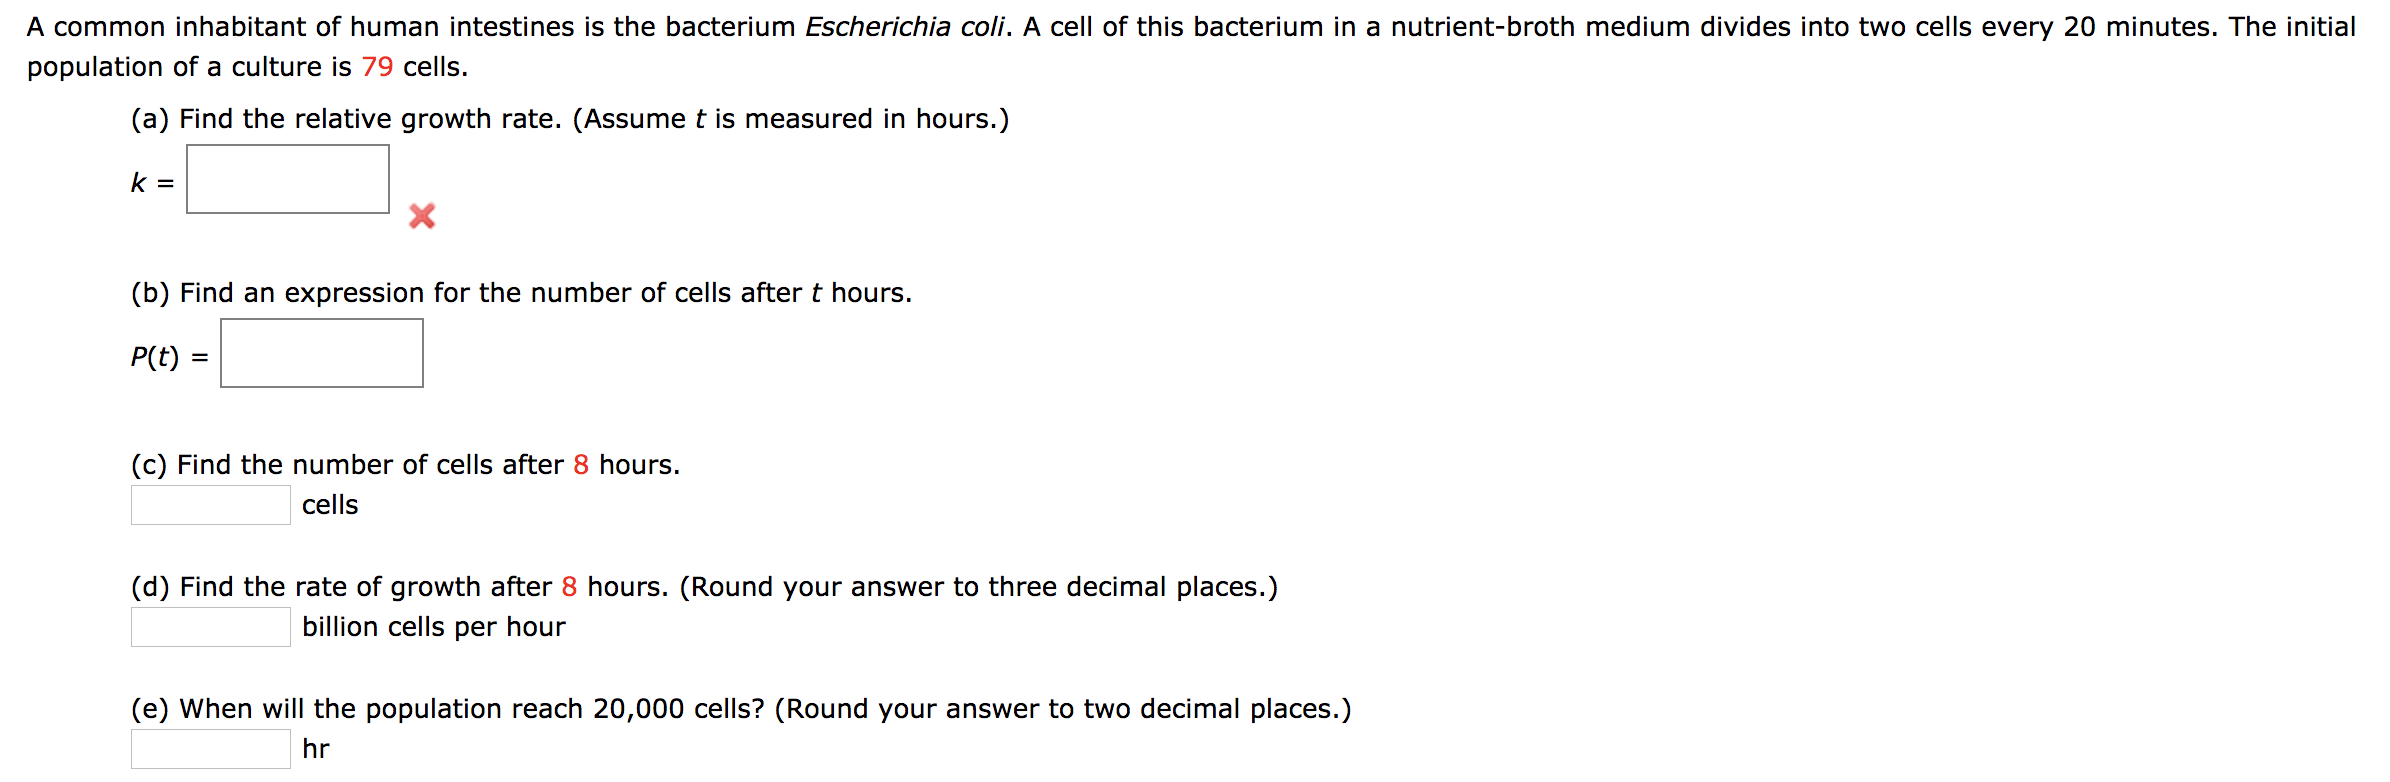 A common inhabitant of human intestines is the bacterium Escherichia coli. A cell of this bacterium in a nutrient-broth medium divides into two cells every 20 minutes. The initial population of a culture is 79 cells. (a) Find the relative growth rate. (Assume t is measured in hours.) k = (b) Find an expression for the number of cells after t hours P(t) (c) Find the number of cells after 8 hours. cells (d) Find the rate of growth after 8 hours. (Round your answer to three decimal places.) billion cells per hour (e) When will the population reach 20,000 cells? (Round your answer to two decimal places.) hr